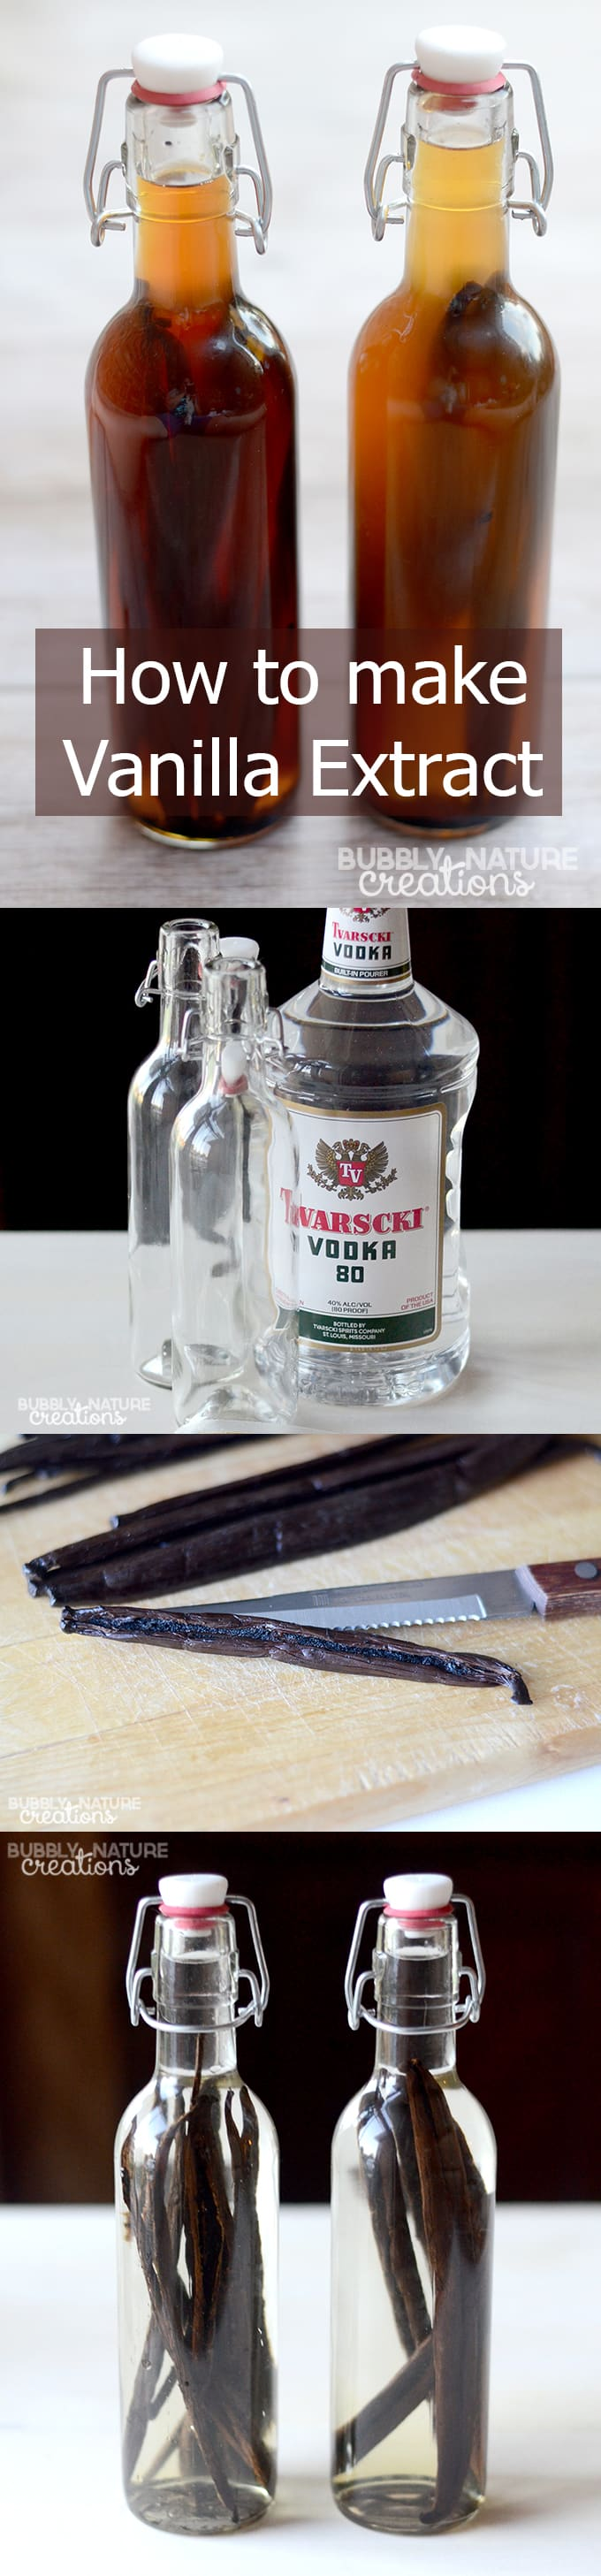 How to Make Vanilla Extract! Just in time for Christmas gift giving ...